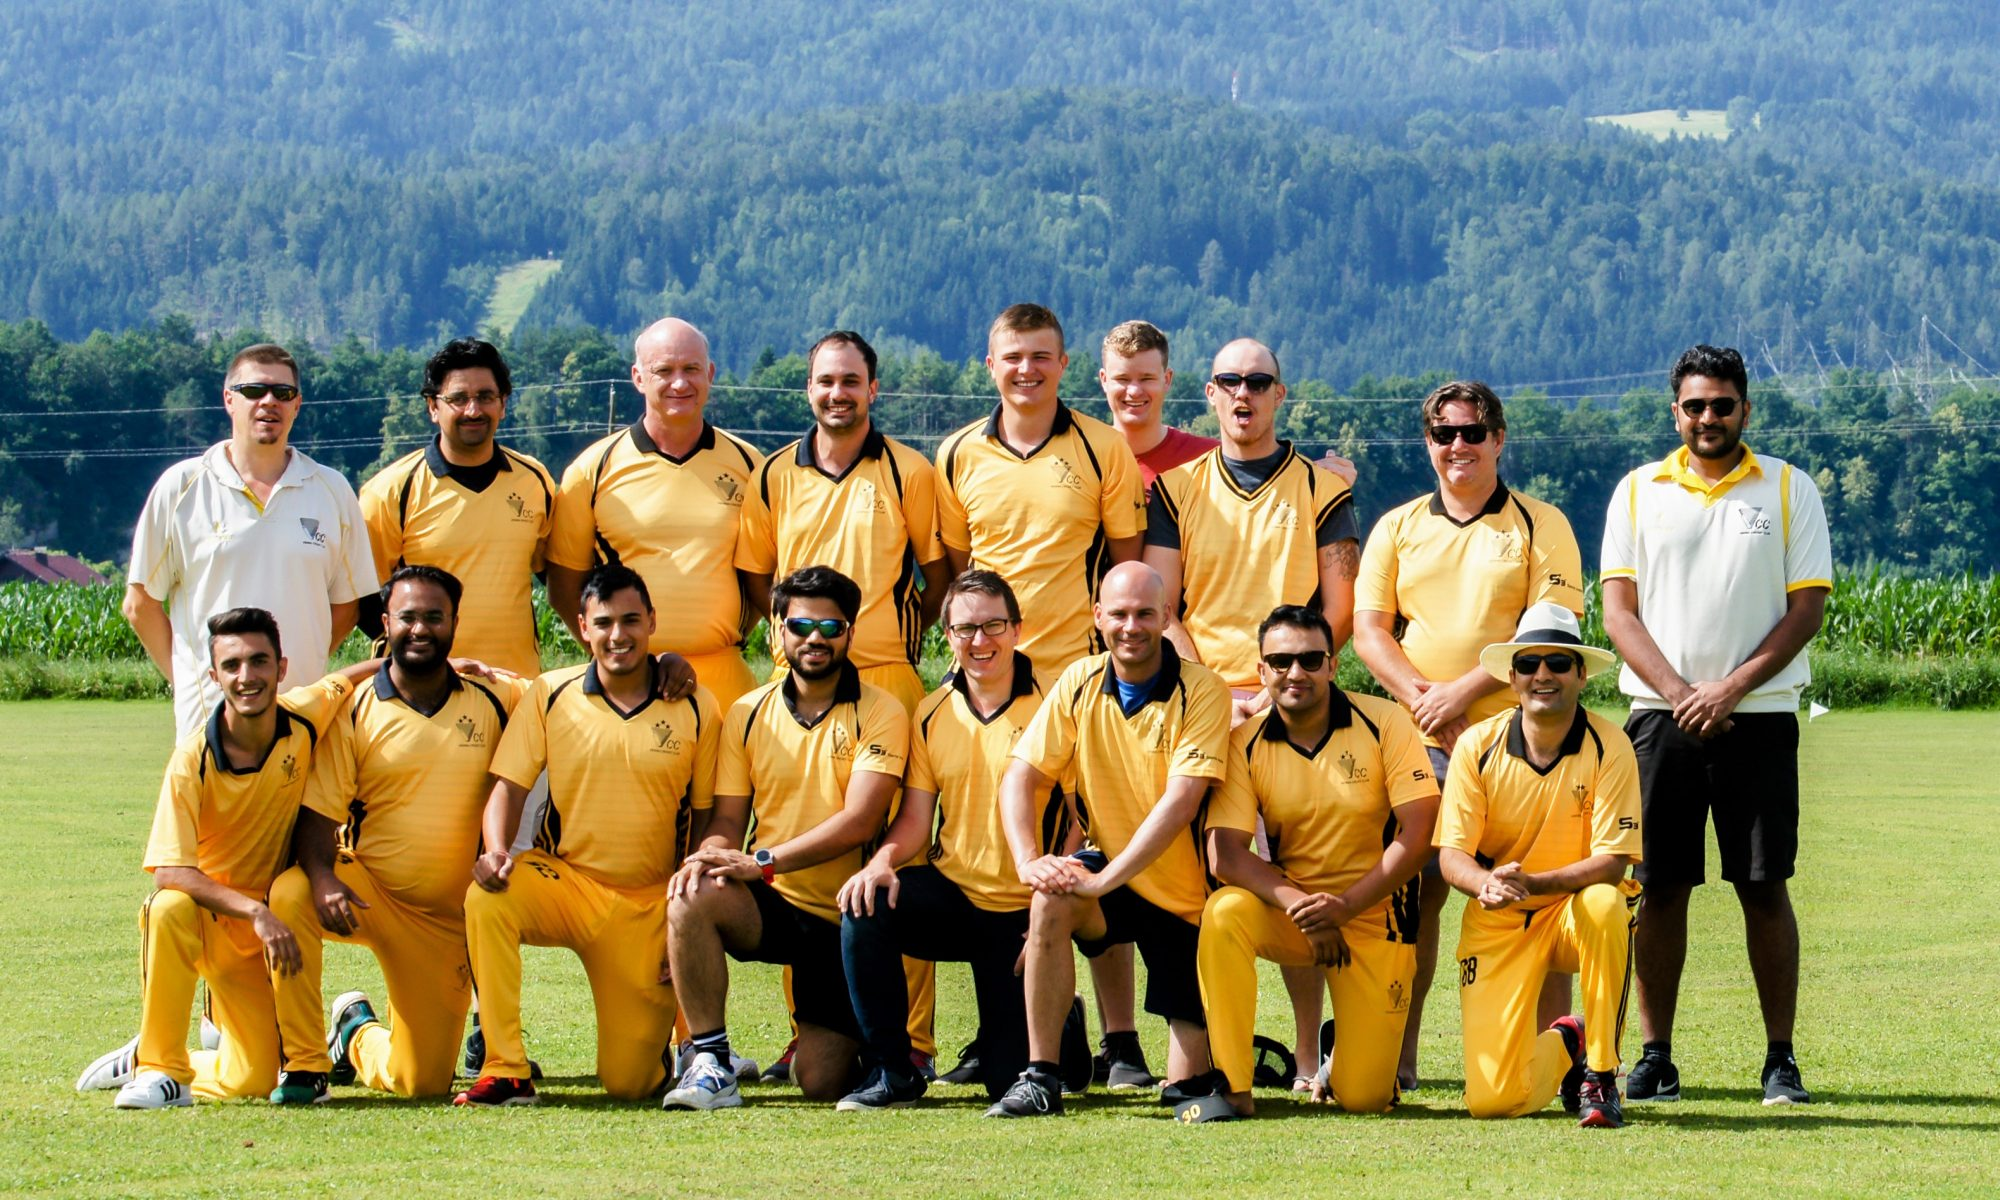 Vienna Cricket Club